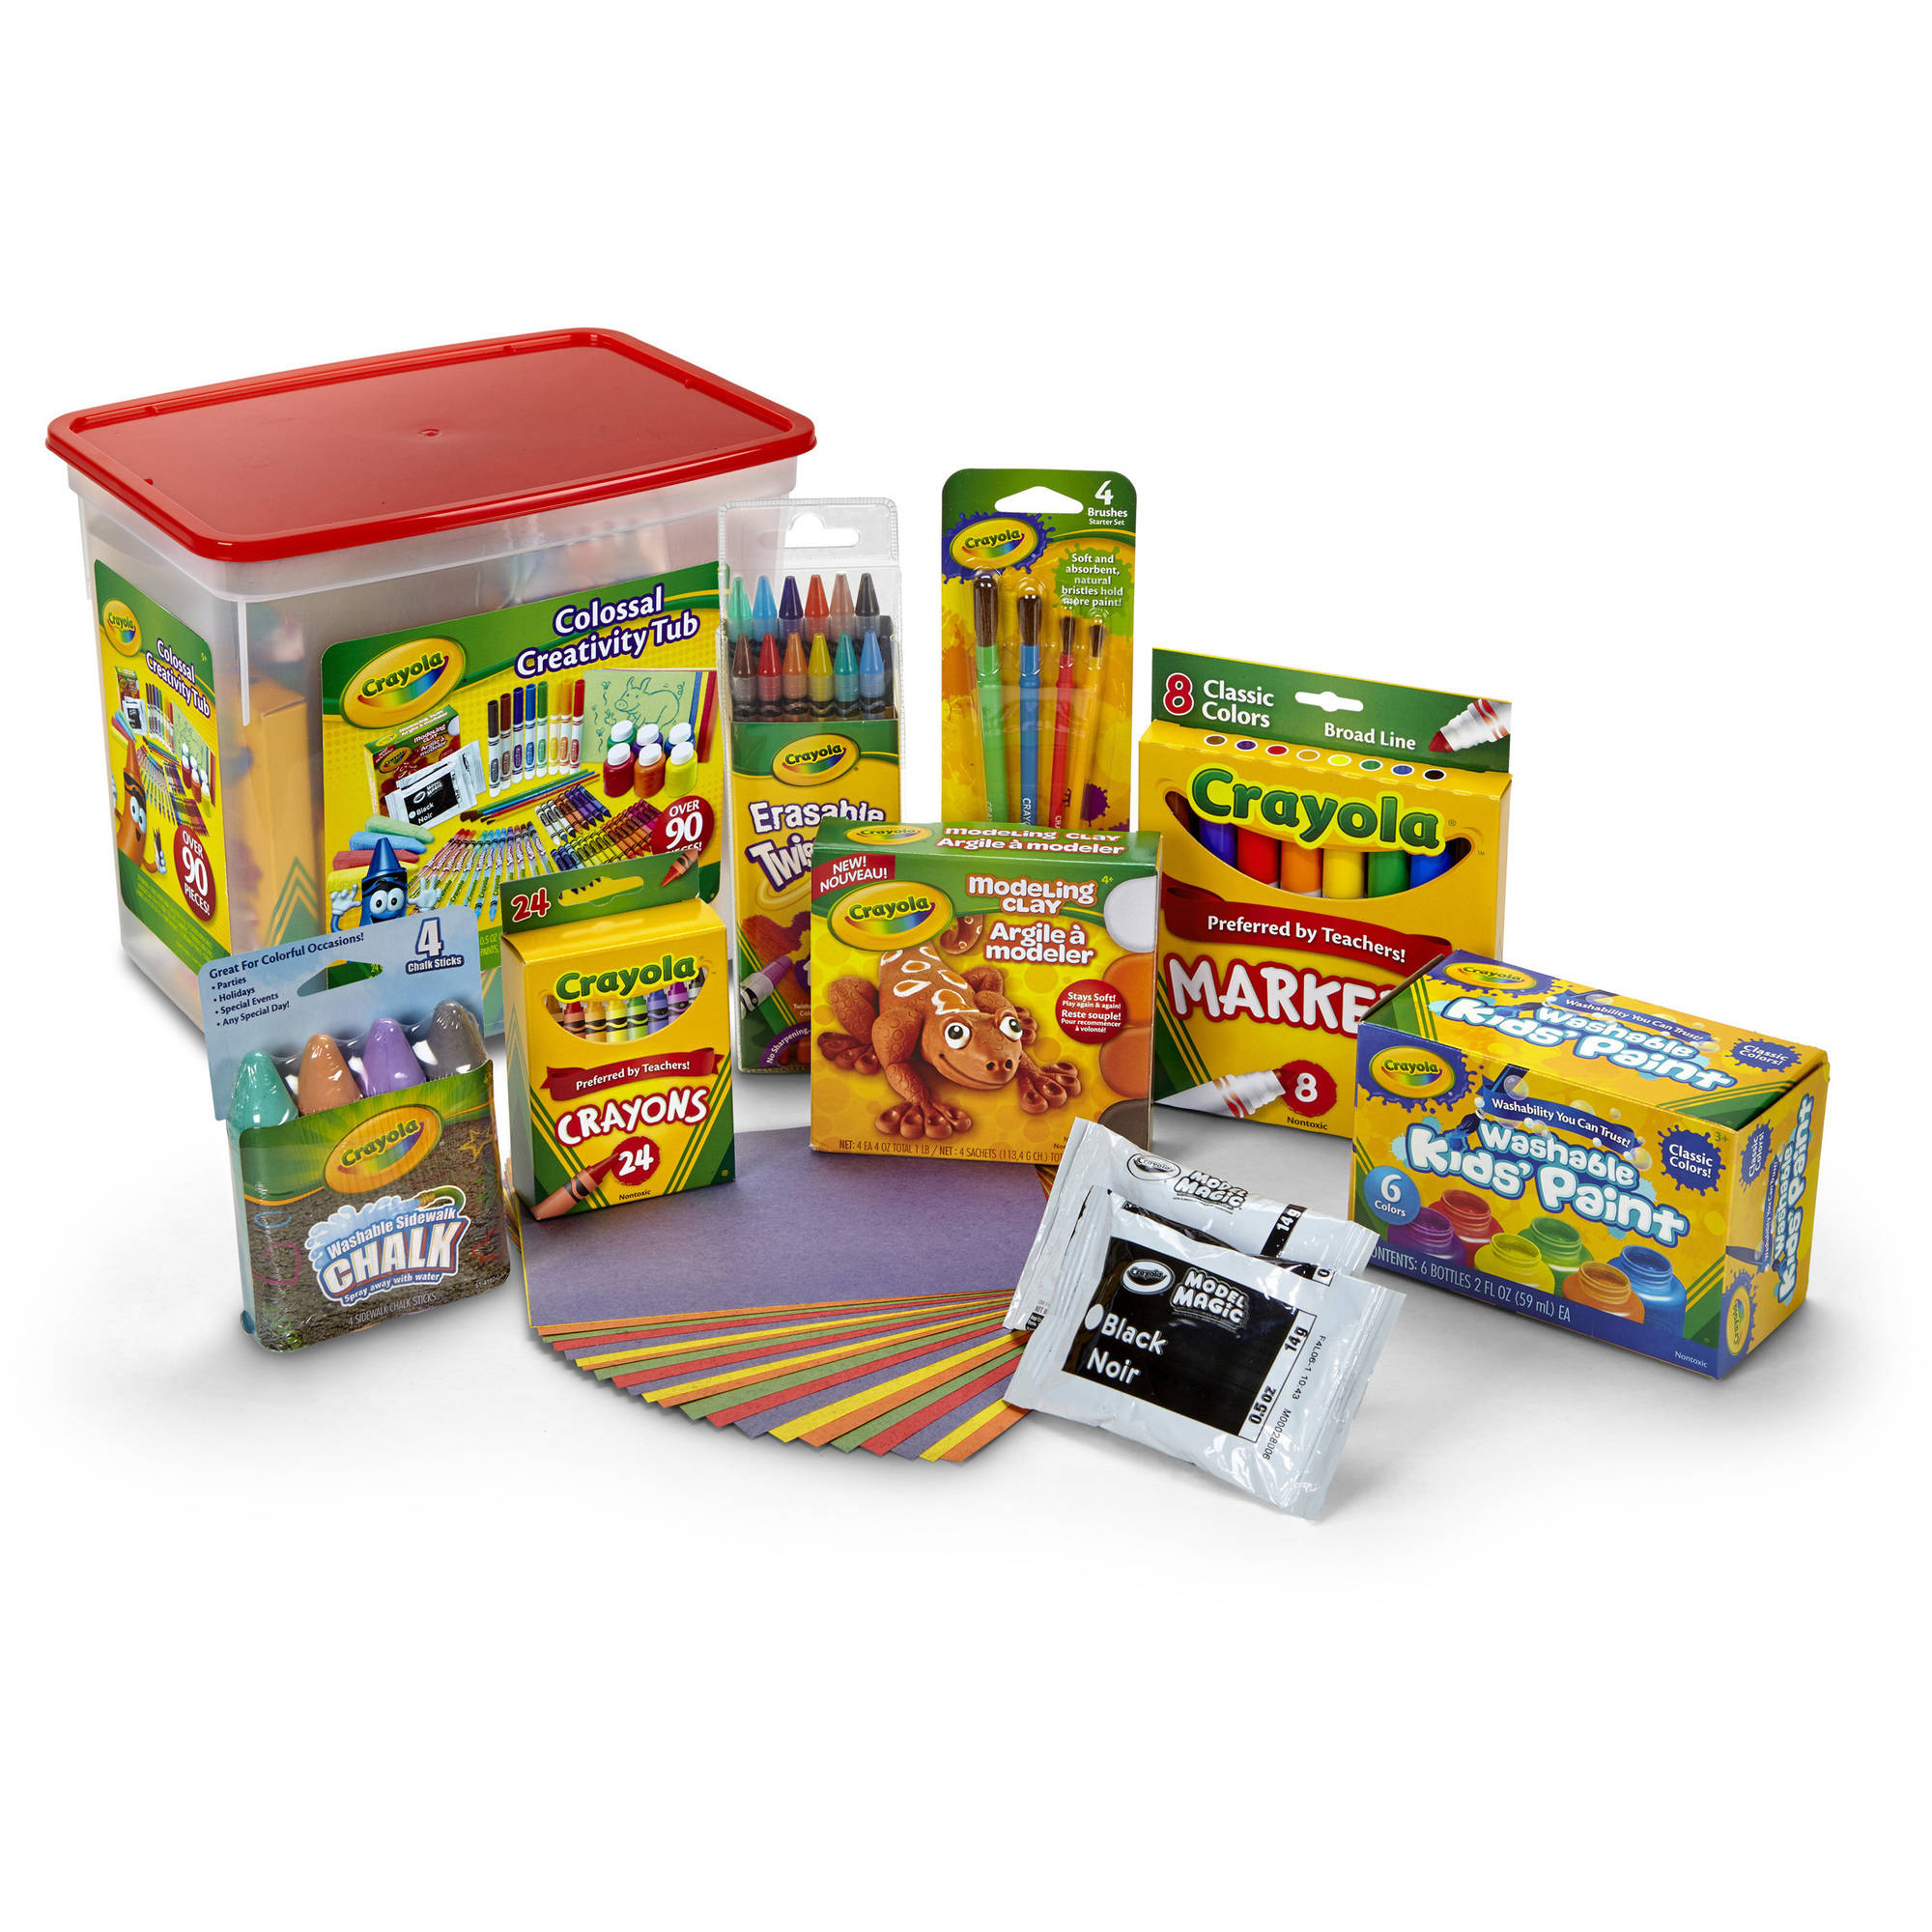 Crayola Colossal Creativity Tub, Over 90 Pieces Includes Crayons, Chalk, Twistable Colored Pencils and More !